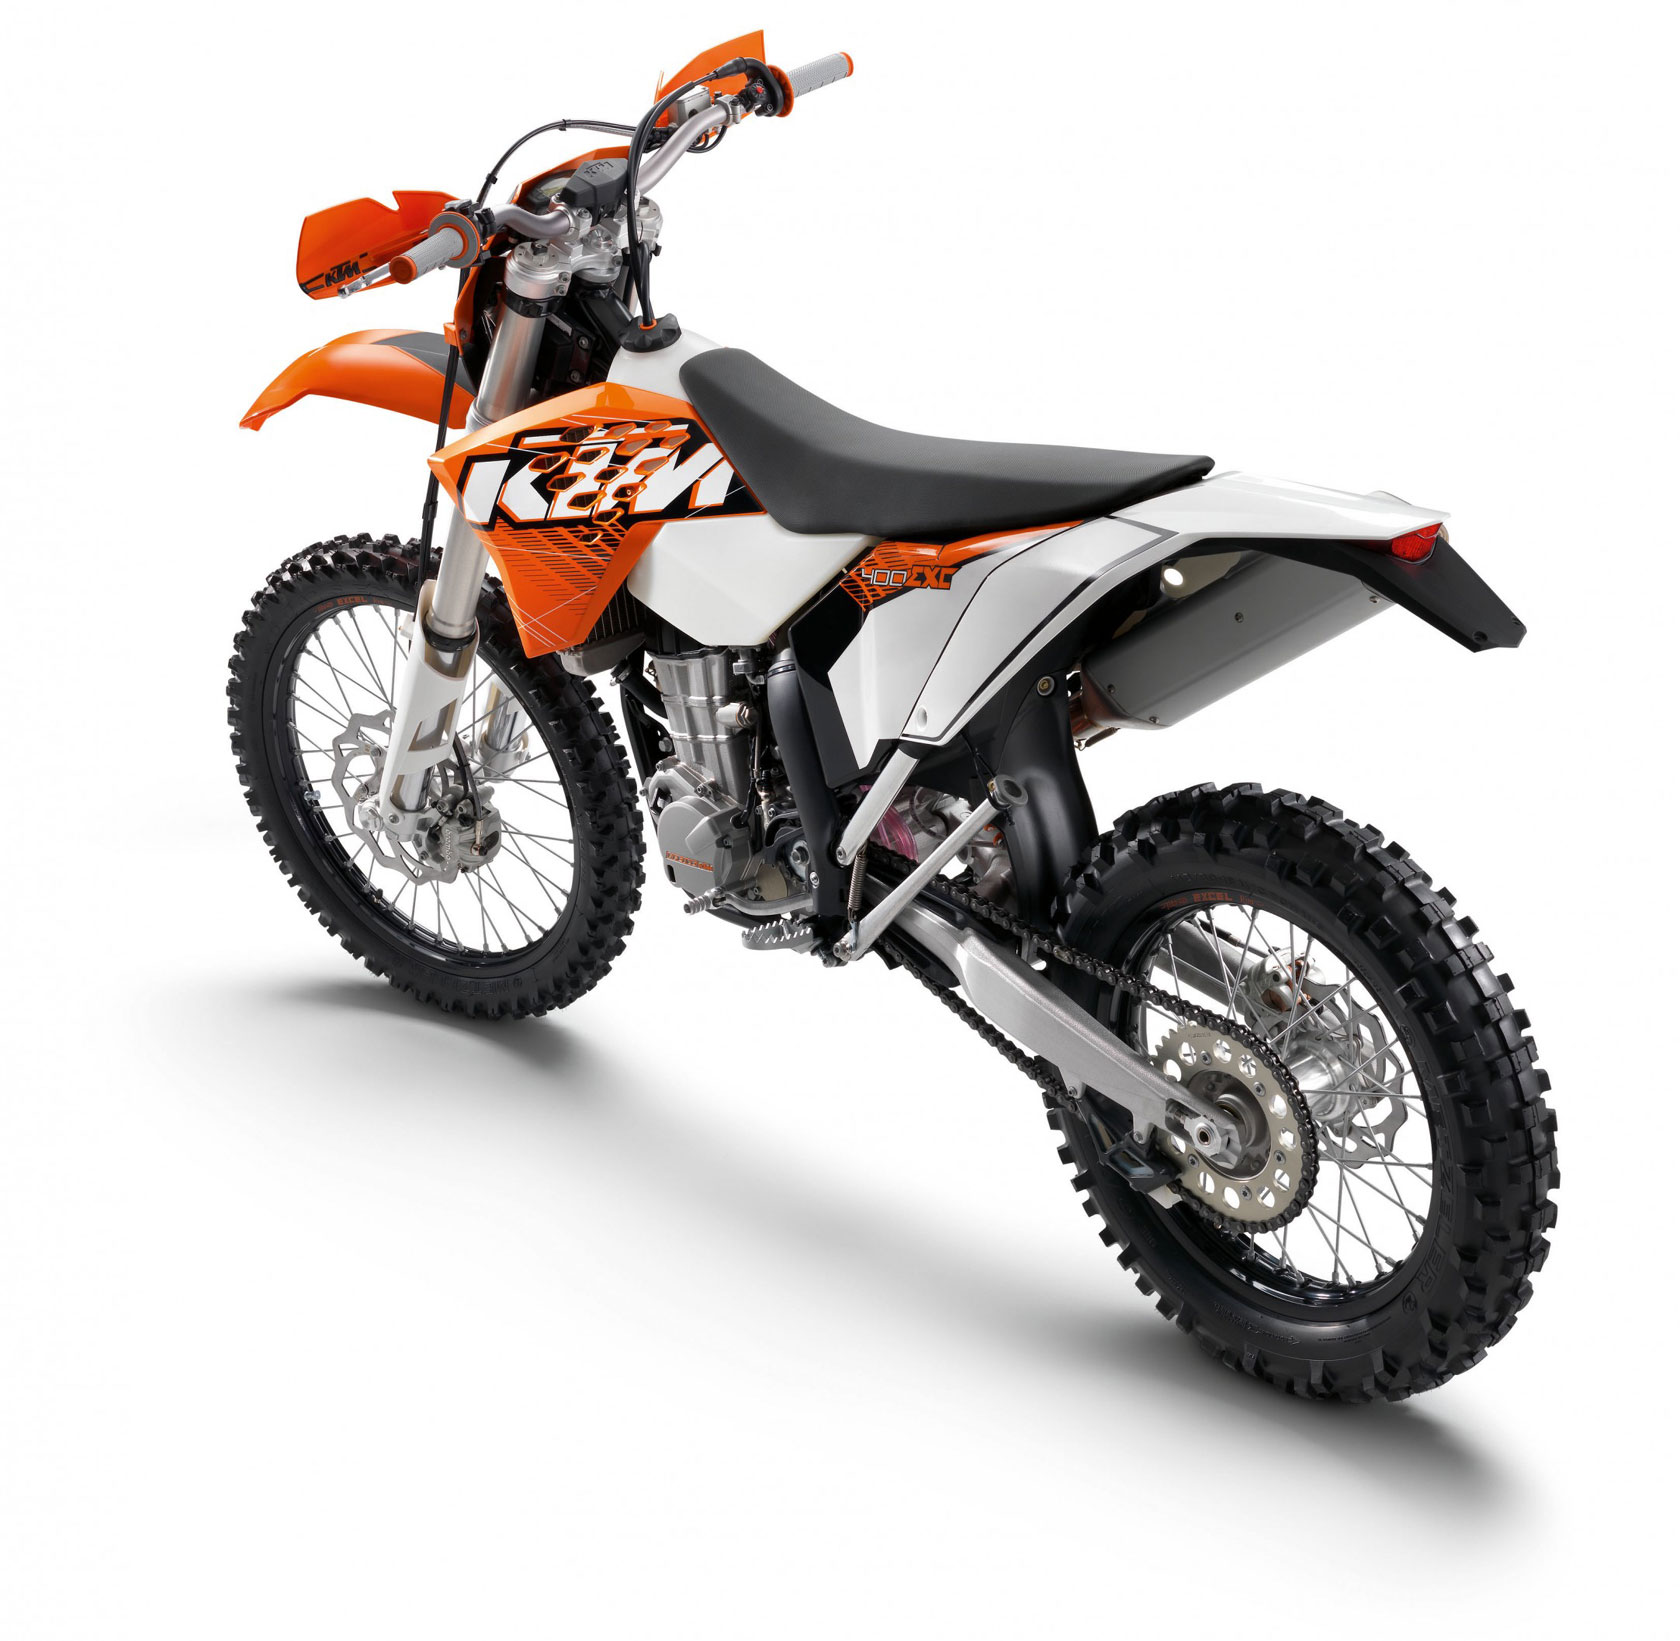 KTM 400 EXC Racing 2005 images #86413